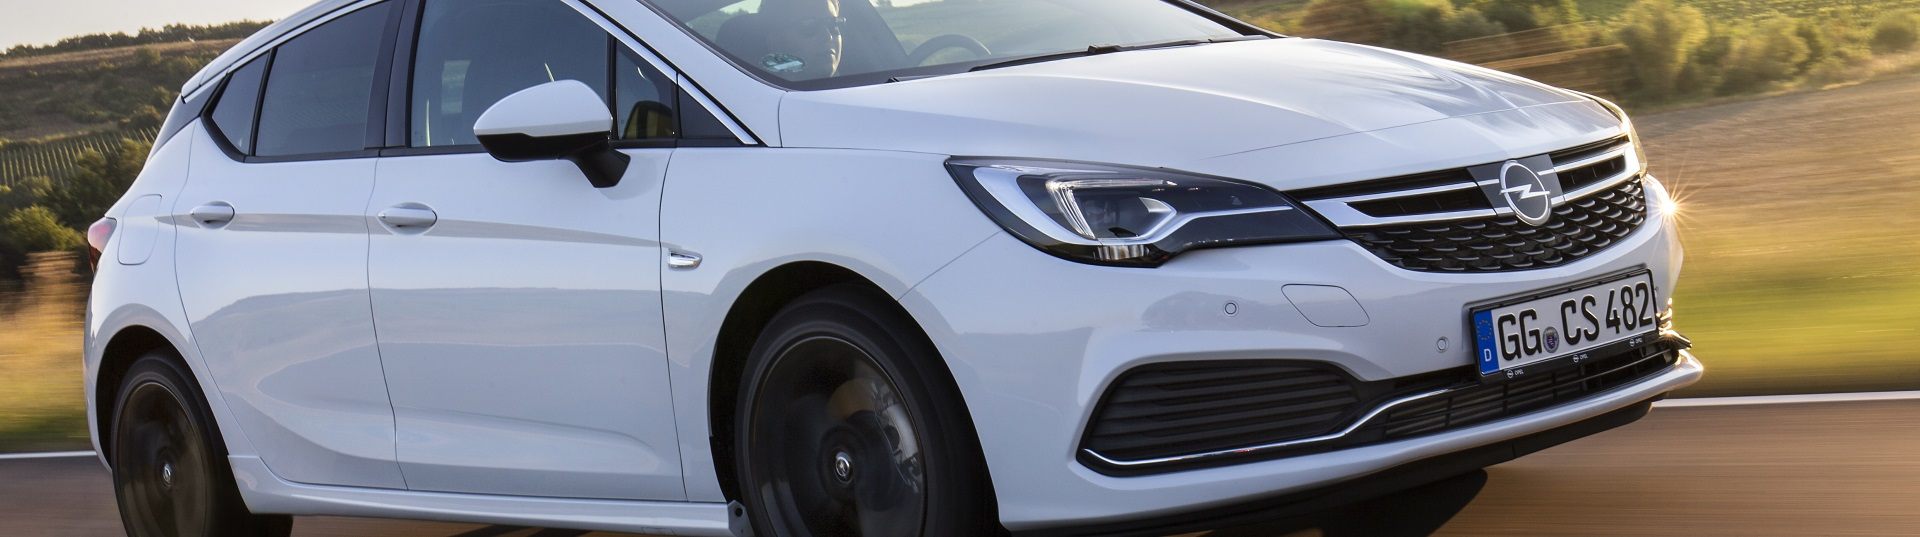 Opel Astra_ACC